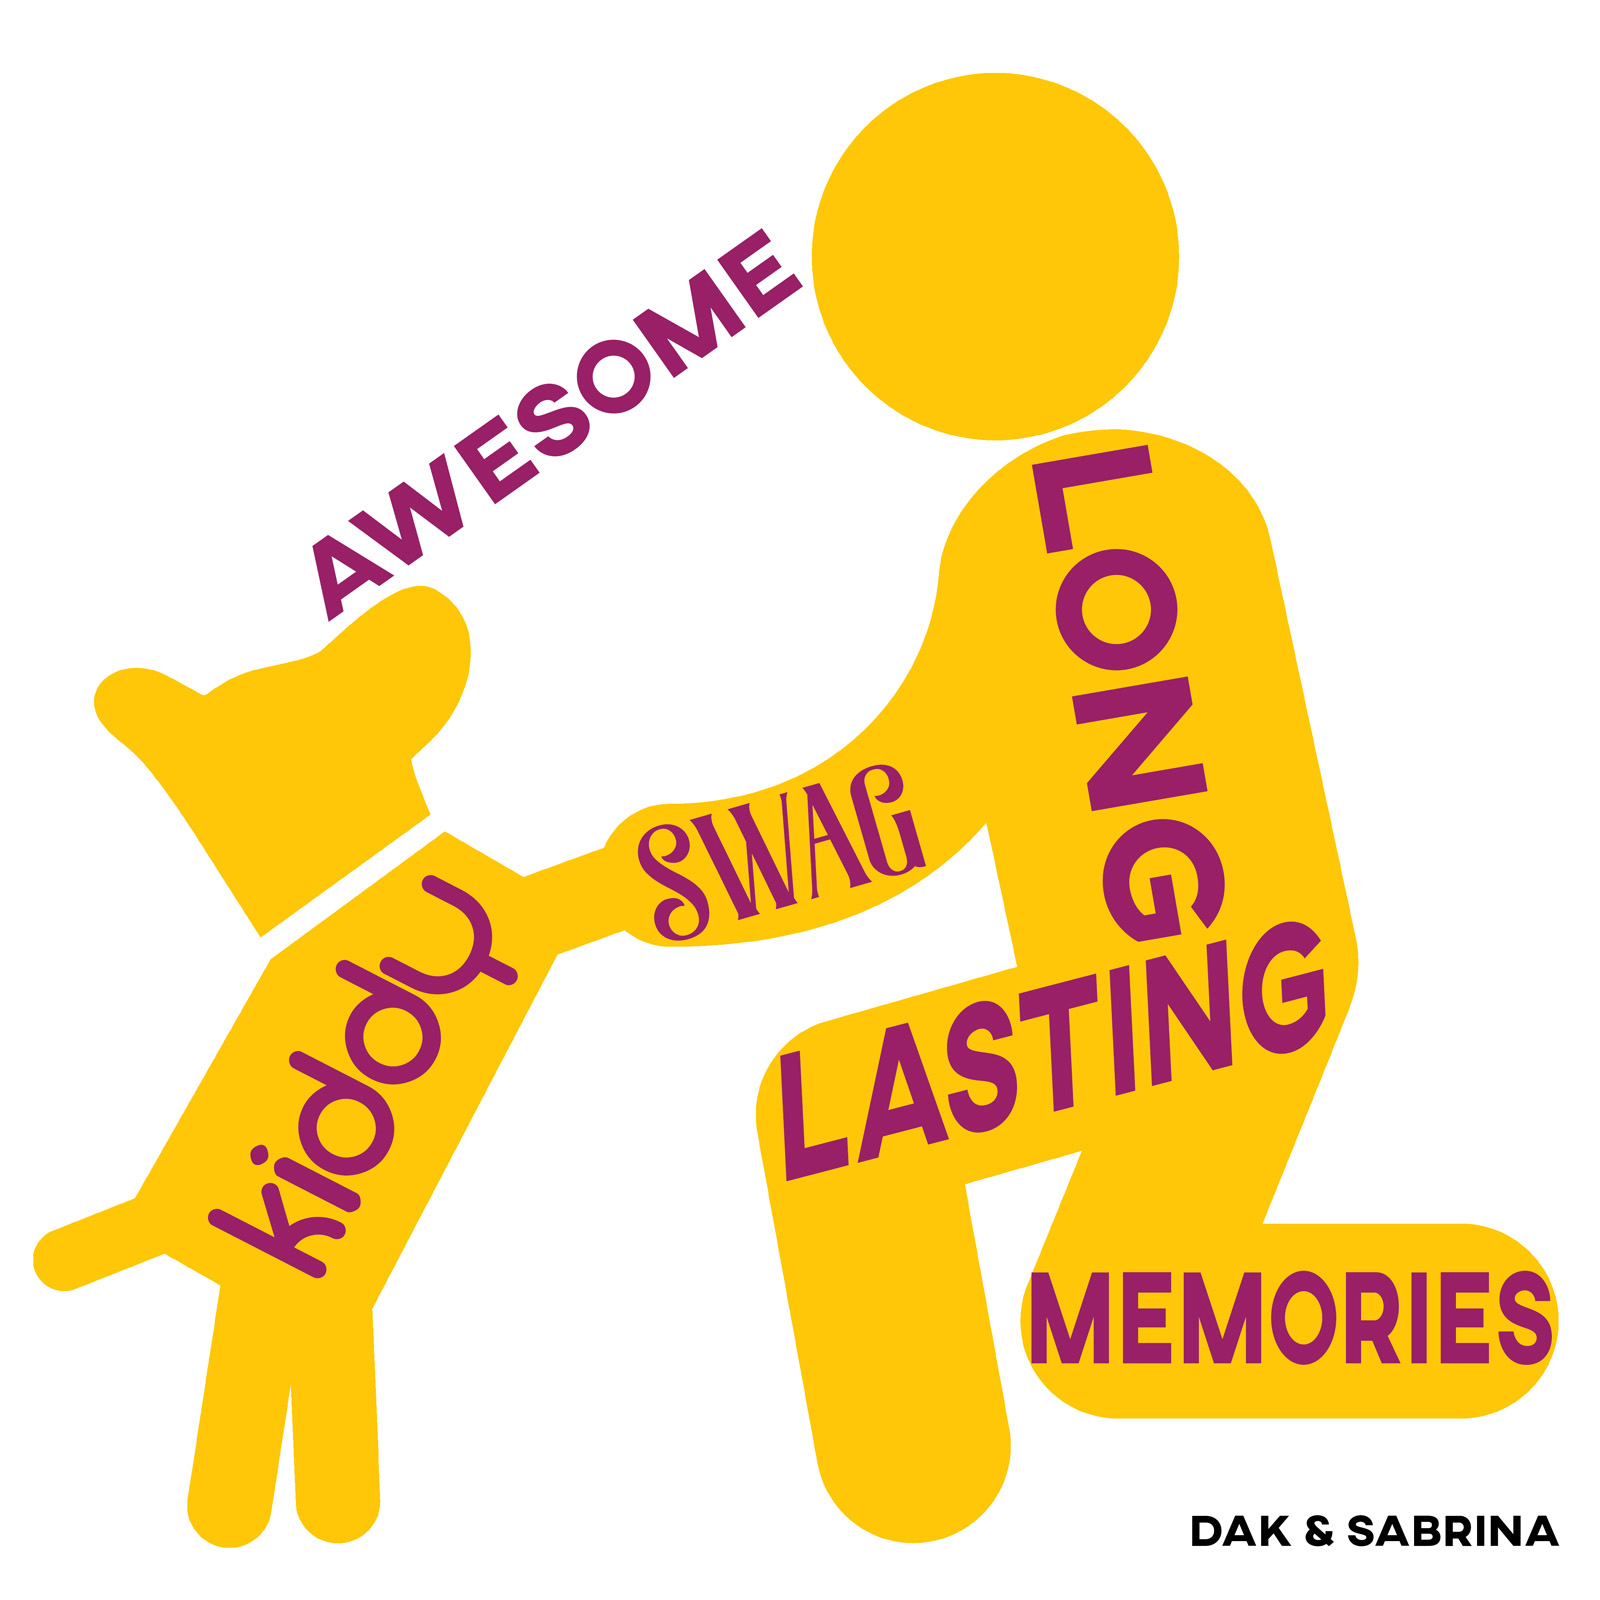 Awesome swag kiddy long lasting memories